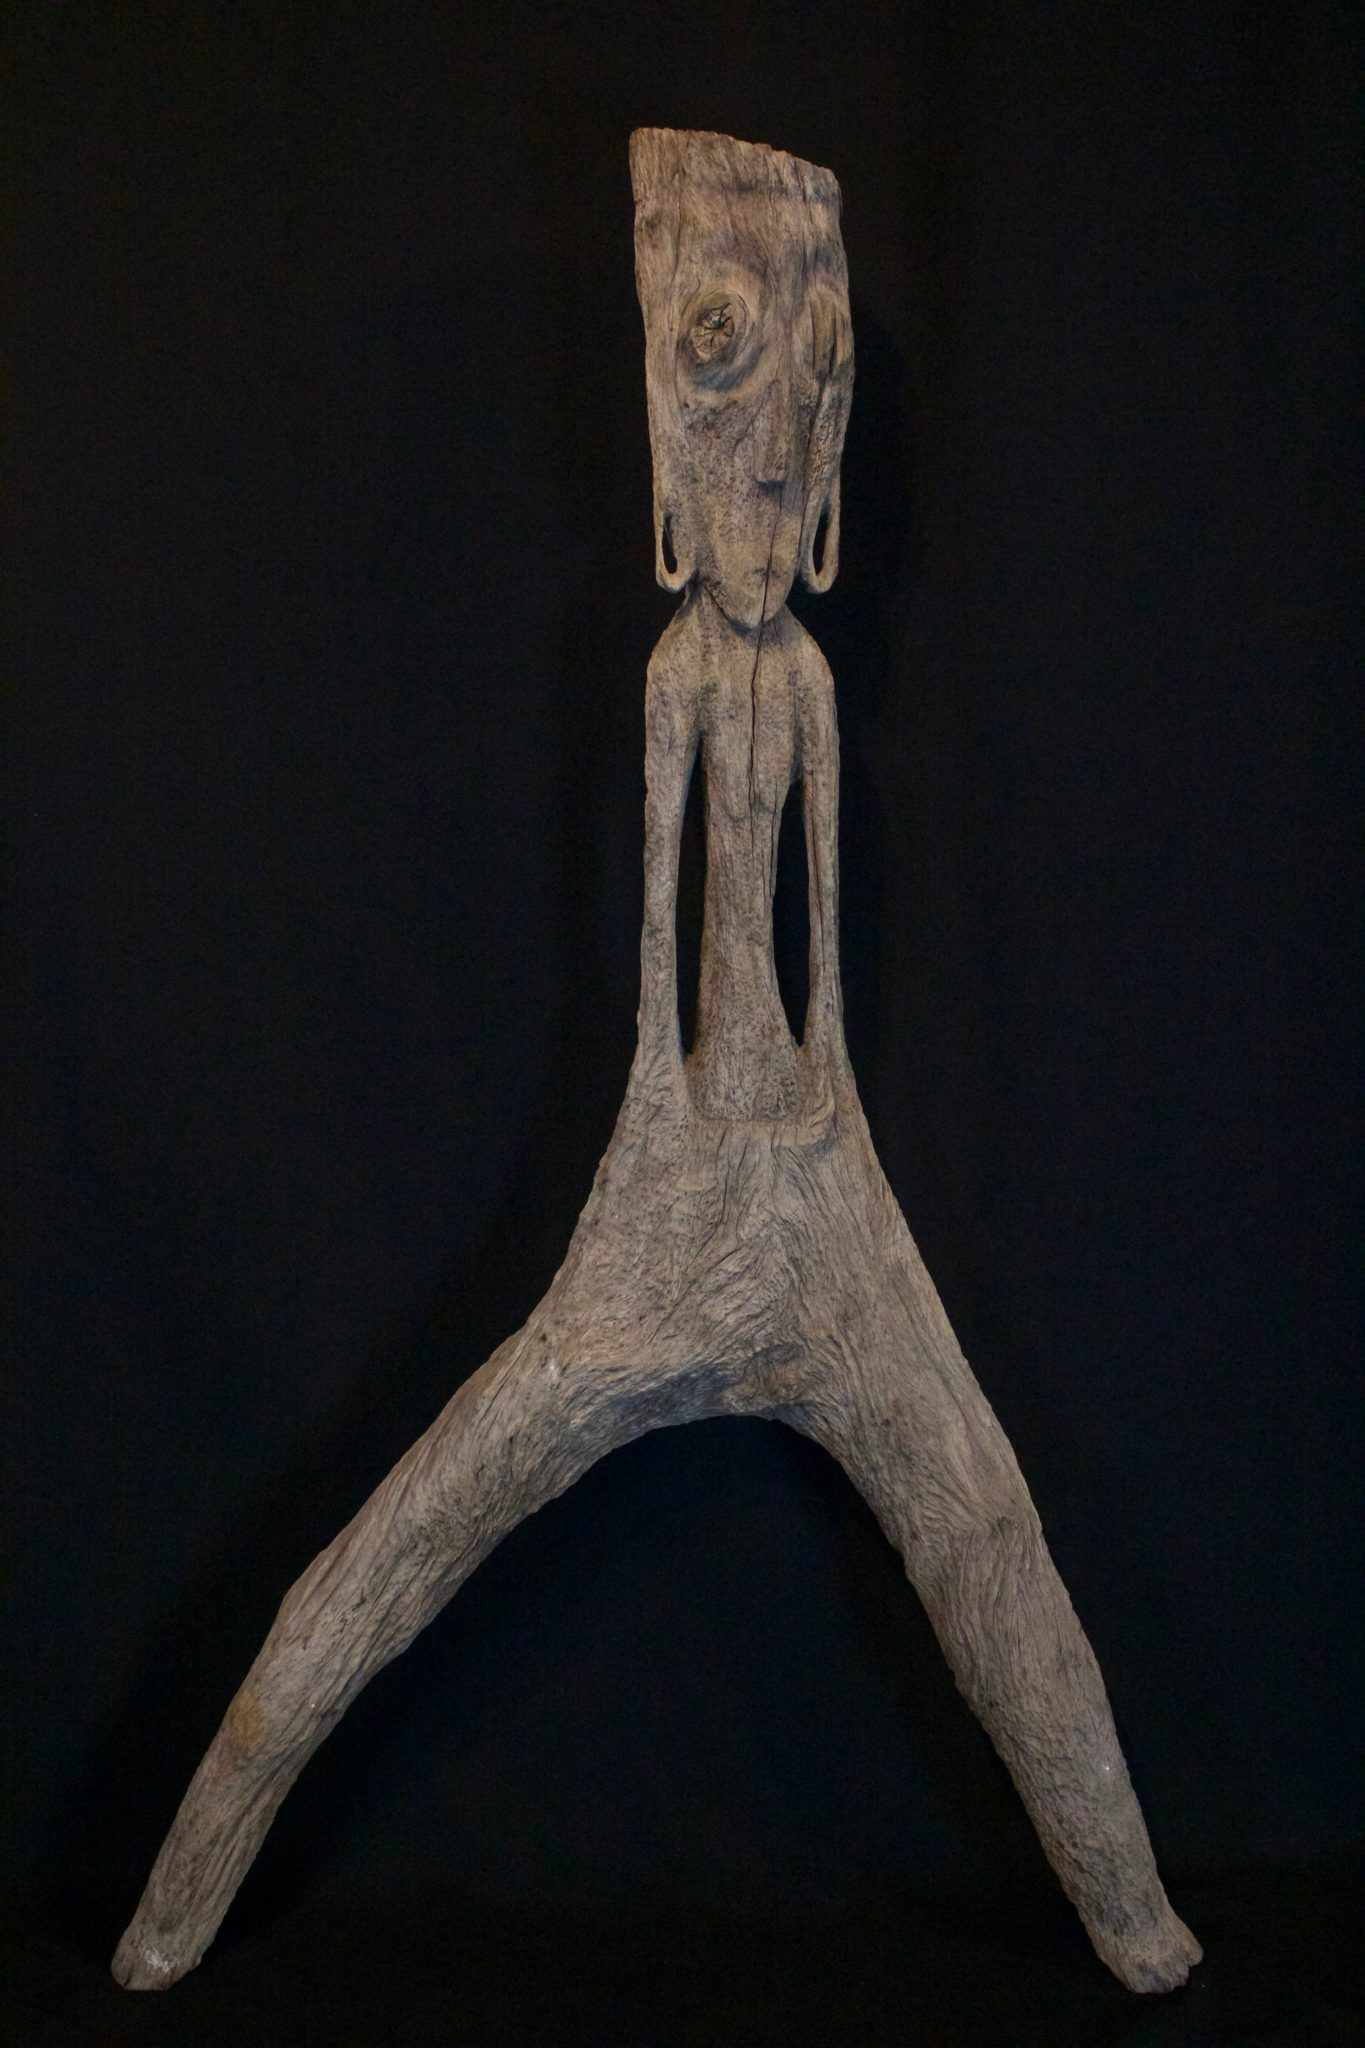 """Magic Protection Figure Kalimantan, Borneo, Indonesia, Dayak tribe, Early to mid 19th c, Ironwood, patinated with use and age. Protection from harmful spirits. 35"""" x 21 ½"""" 8"""", $1600."""